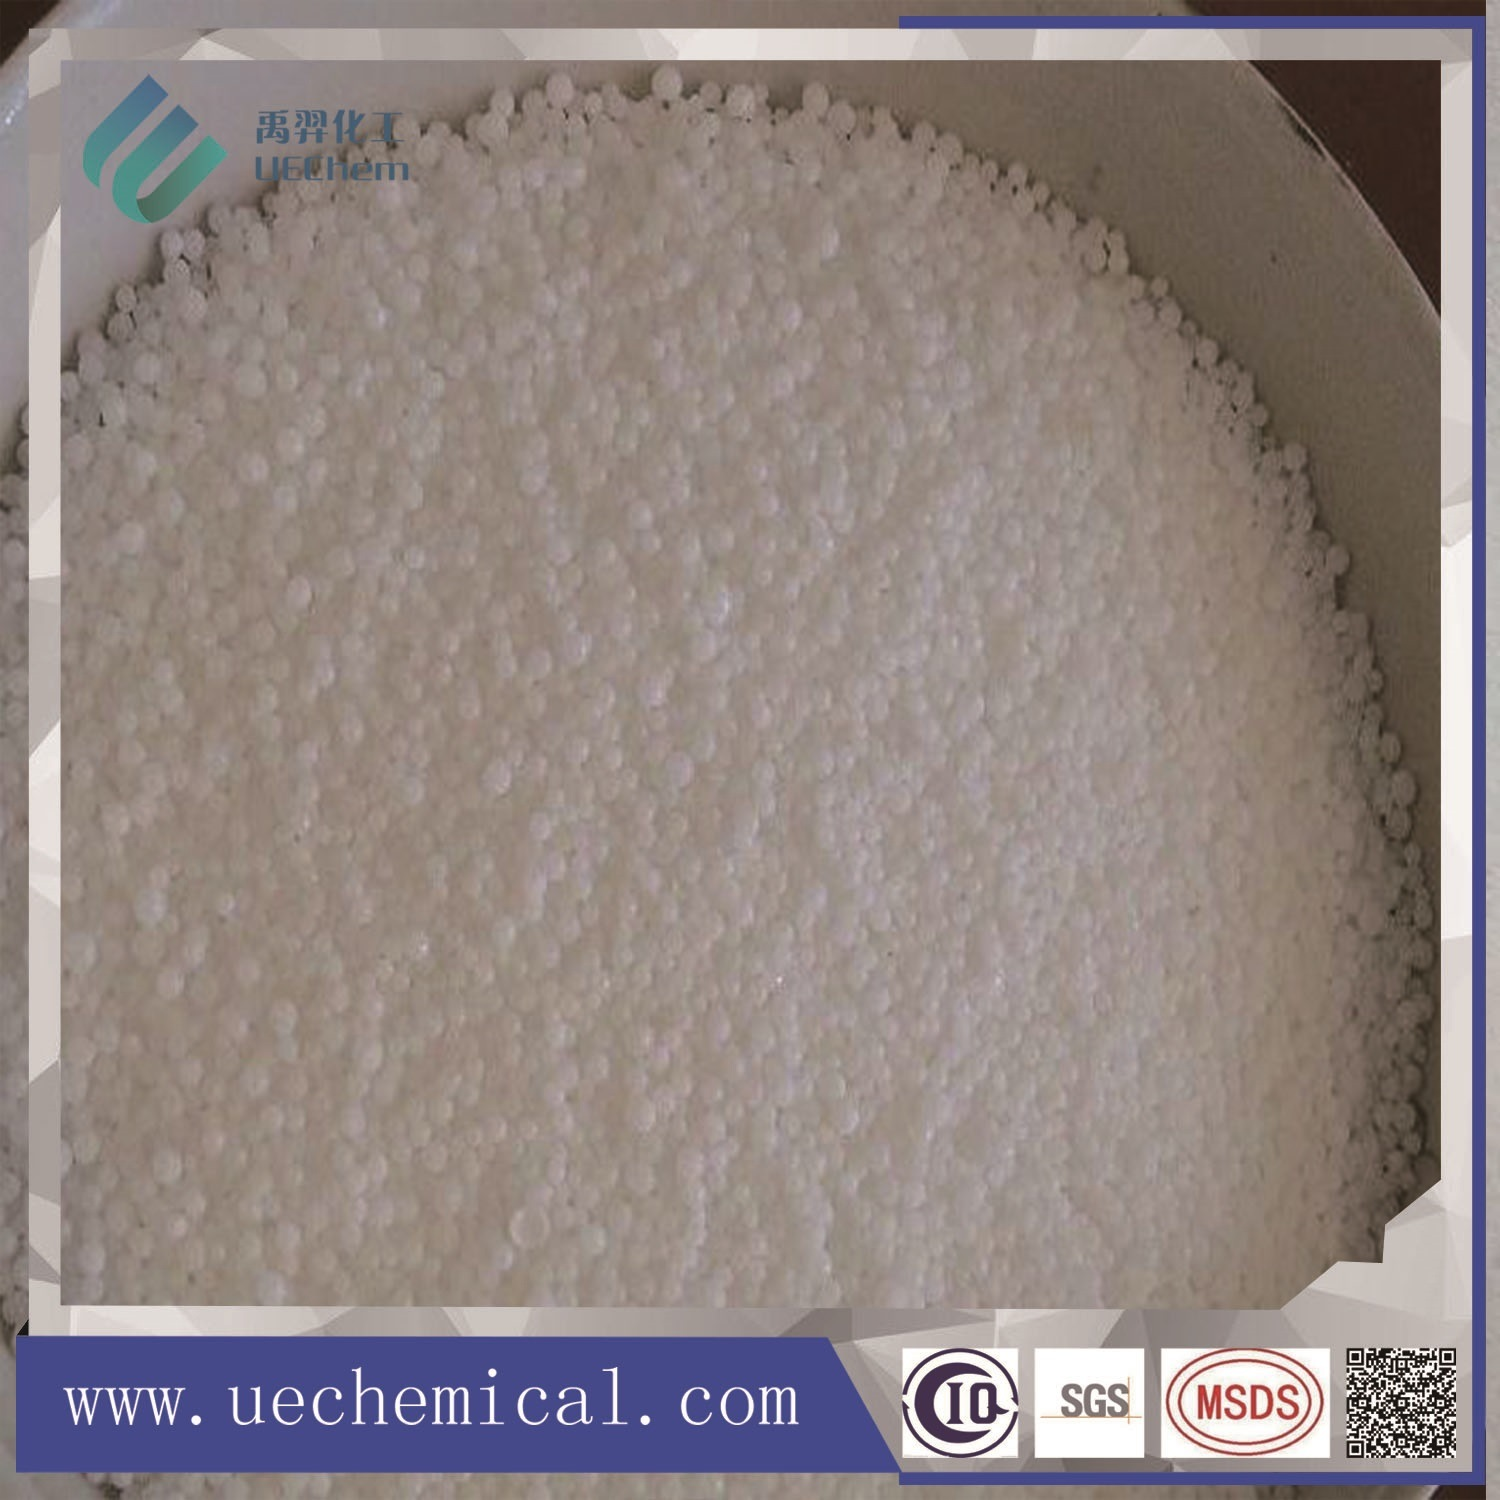 Factory Price of Caustic Soda Pearl 99%